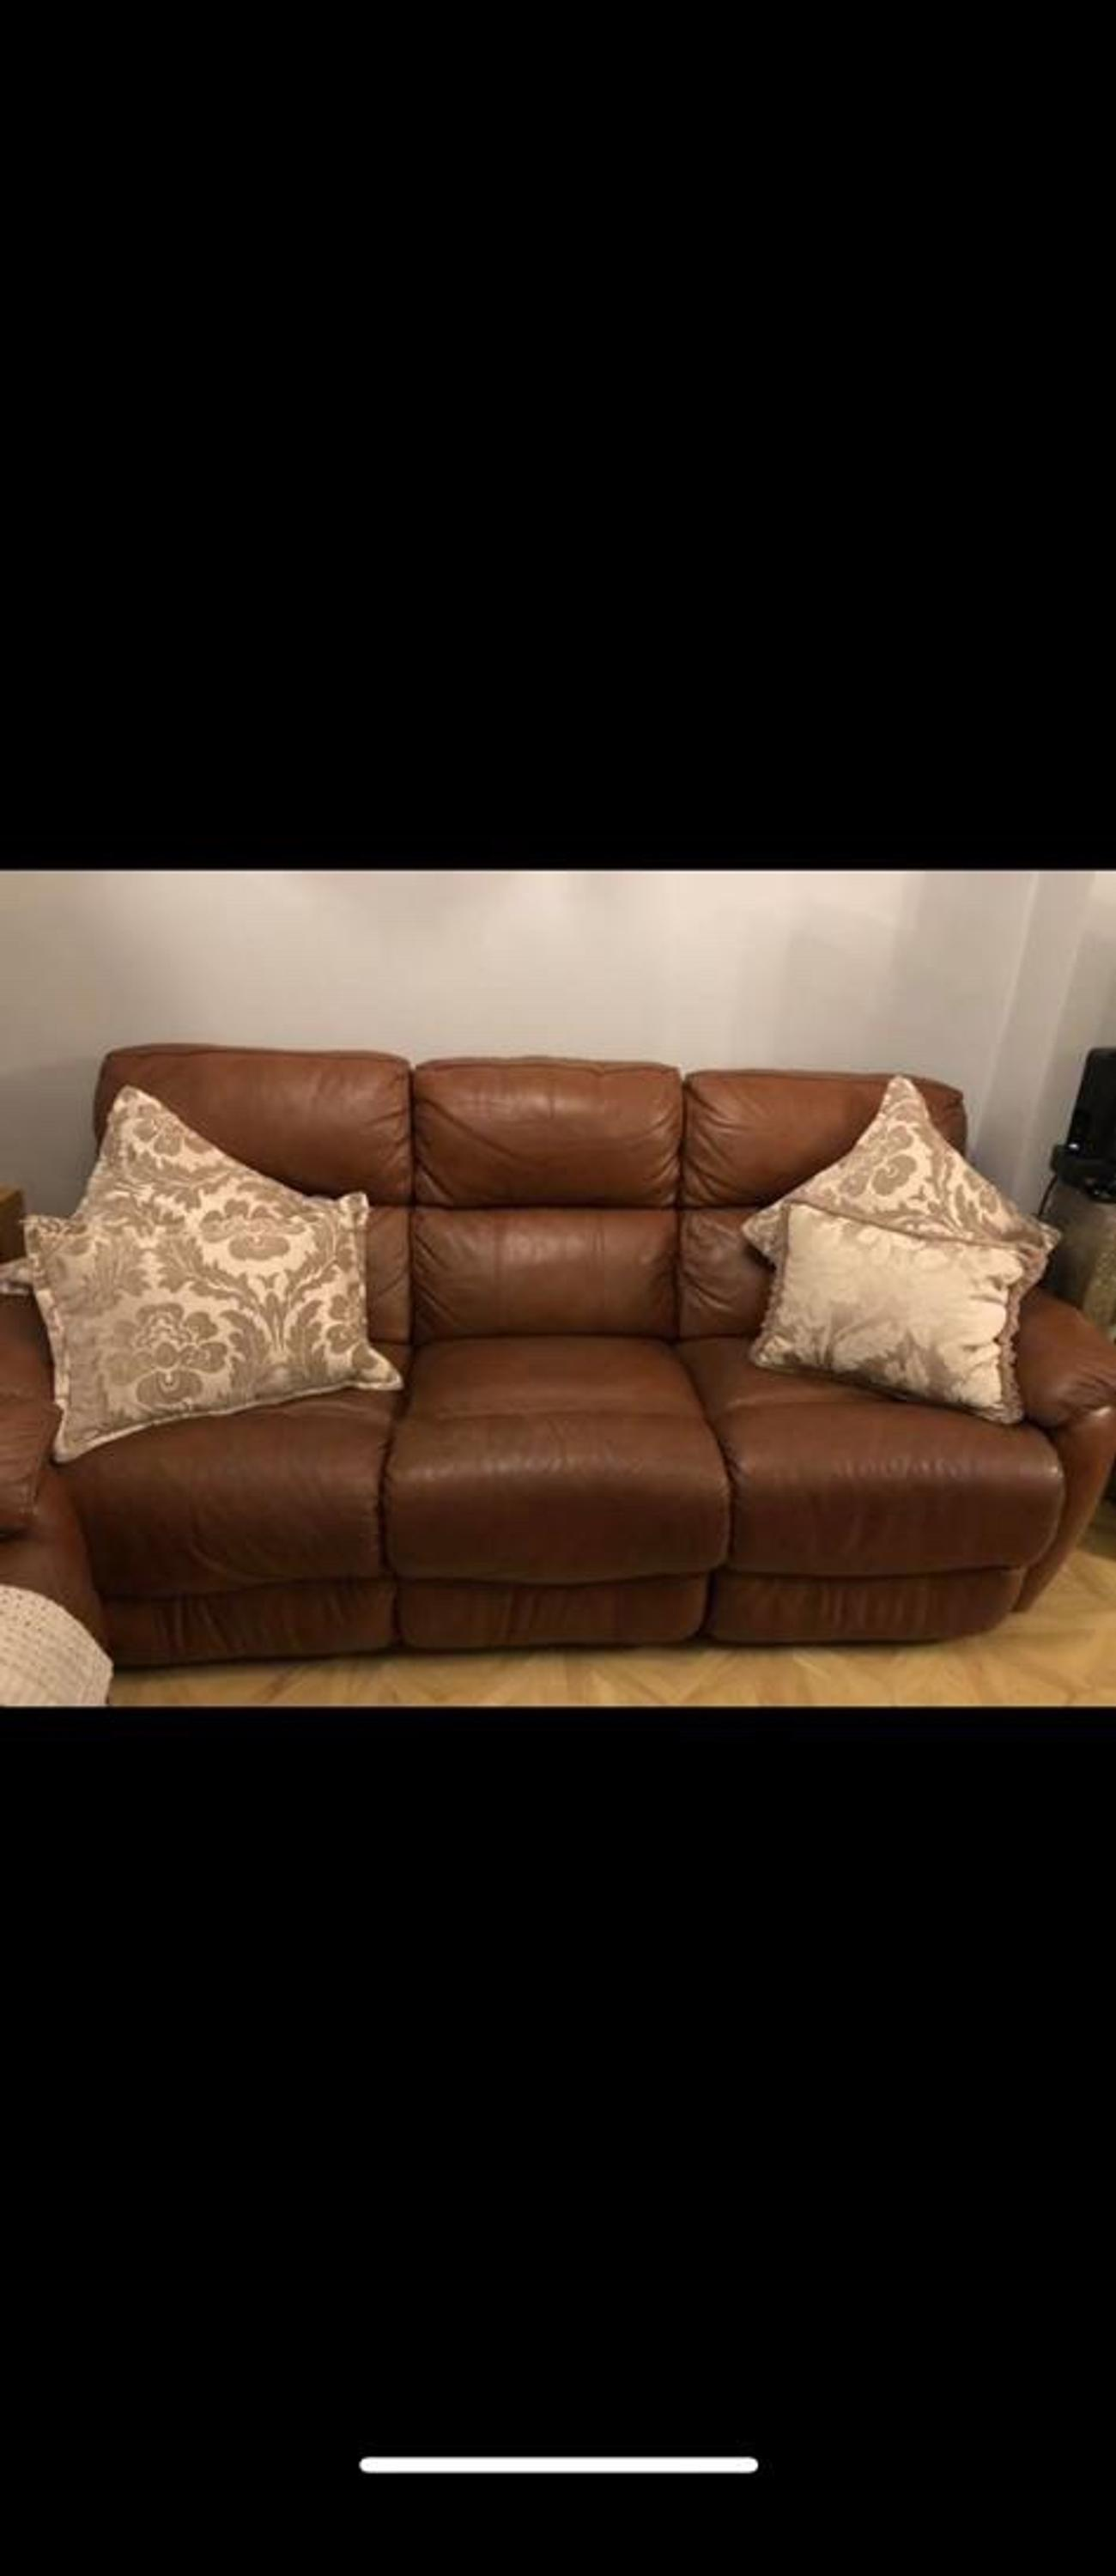 ITALIAN LEATHER SOFAS in TW20 Runnymede for £600.00 for sale ...